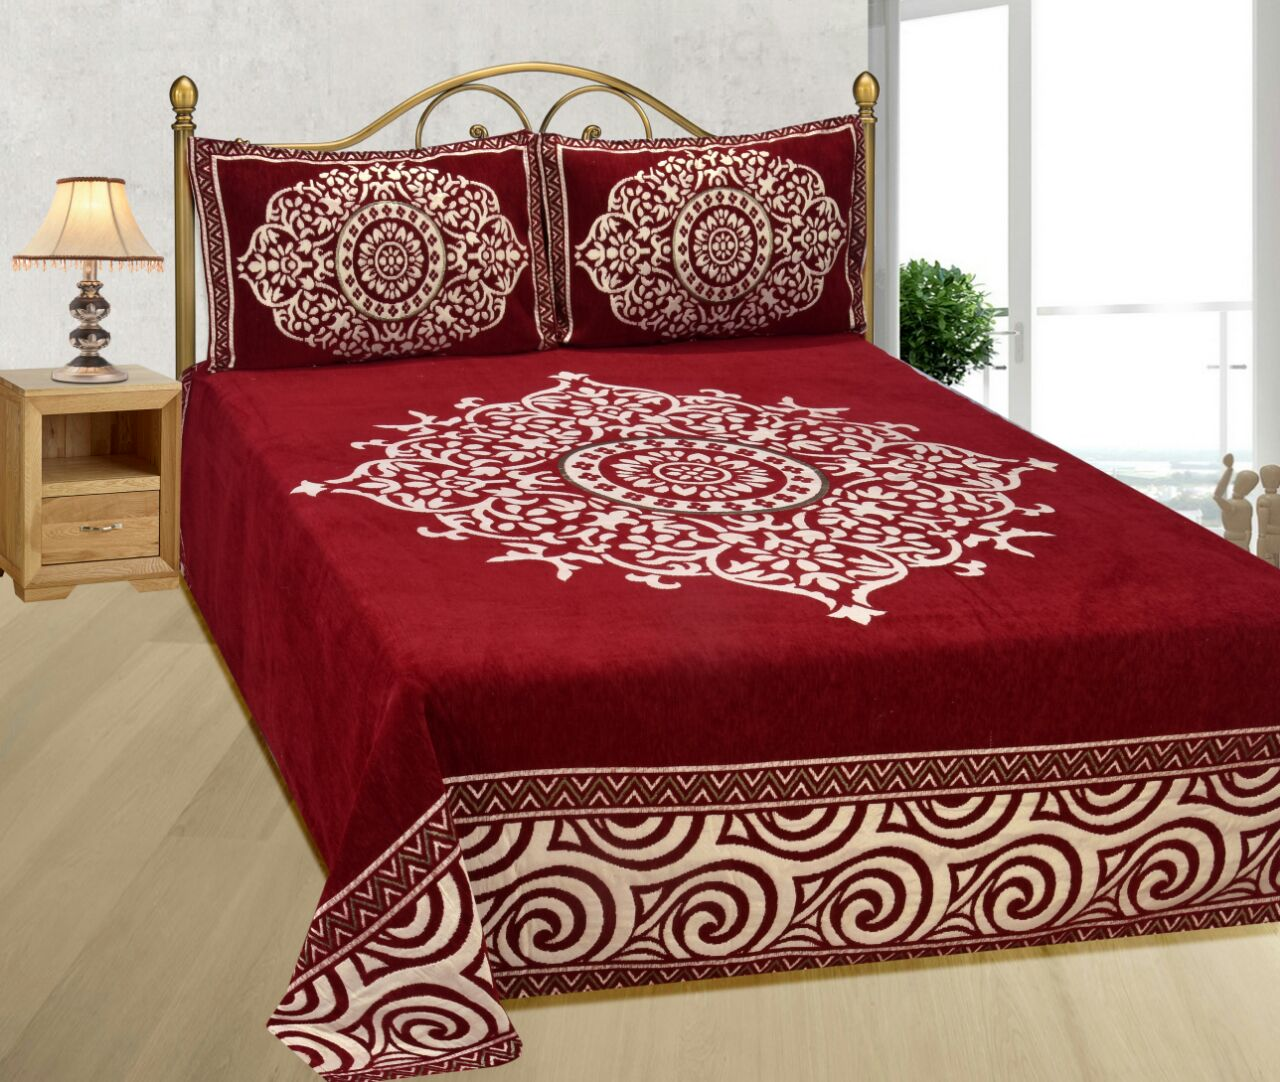 Medieval Royal Arts Heavy Chenille Bedcover- Luxury Red